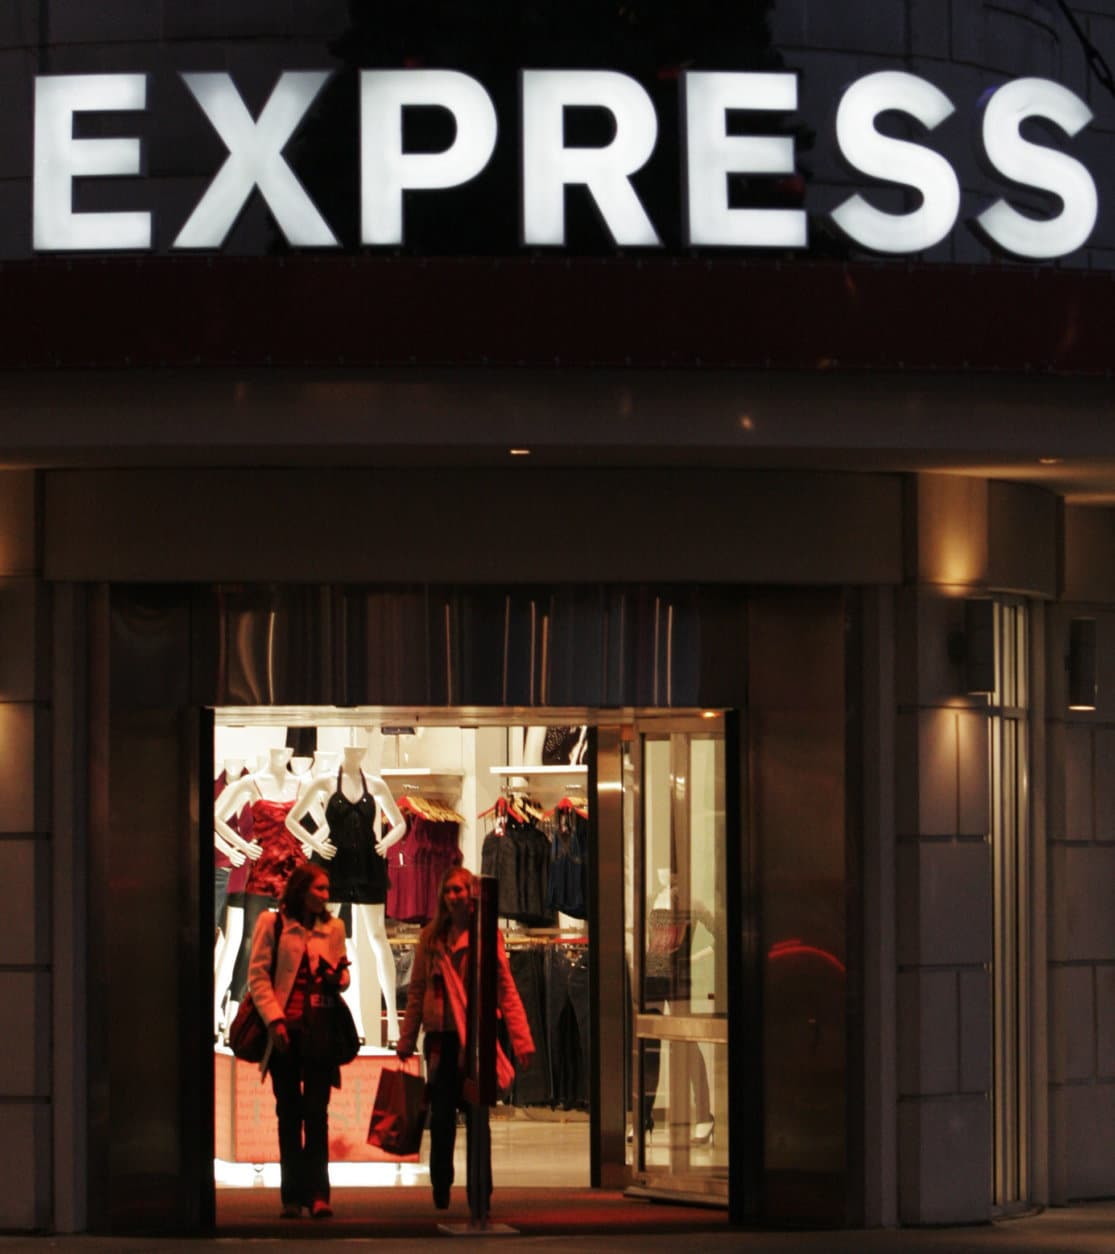 ** FILE **  In this Nov. 14, 2006 file photo, an Express store, a Limited brand, in Columbus, Ohio, is shown. Limited Brands Inc. on Tuesday, May 15, 2007, said it will sell a majority interest in its underperforming Express apparel brand and is considering options for its Limited Stores chain. Limited Brands, the operator of Victoria's Secret and Bath & Body Works, said it is selling 67 percent of its interest in Express to affiliates of private equity firm Golden Gate Capital for $548 million. The sale is expected to be completed by July. (AP Photo/Kiichiro Sato)